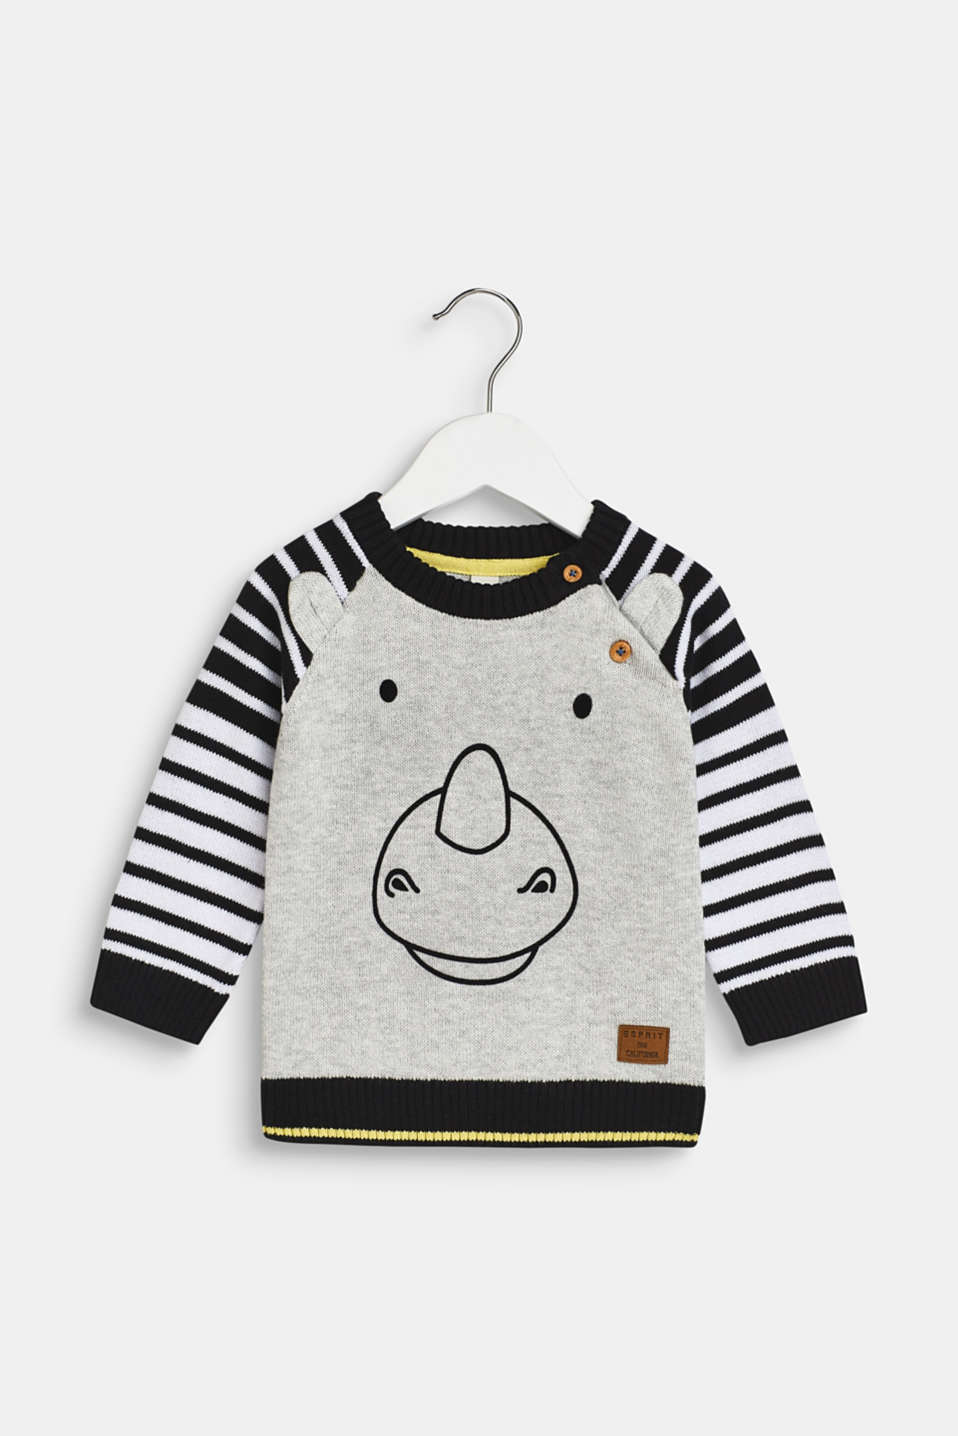 Esprit - Jumper with a rhino face, 100% cotton